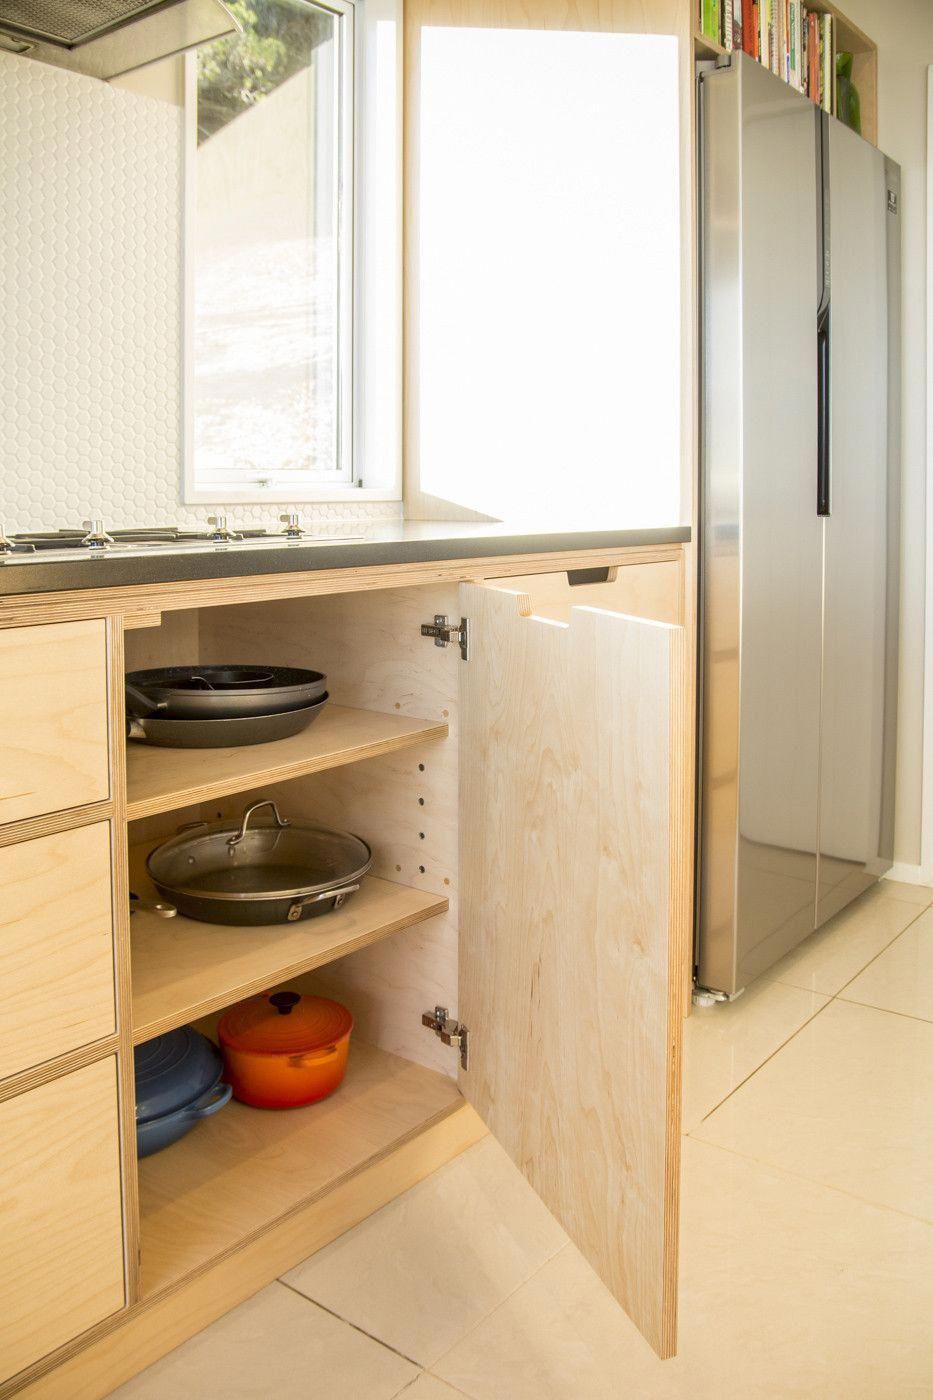 kitchenremodelingidea Plywood